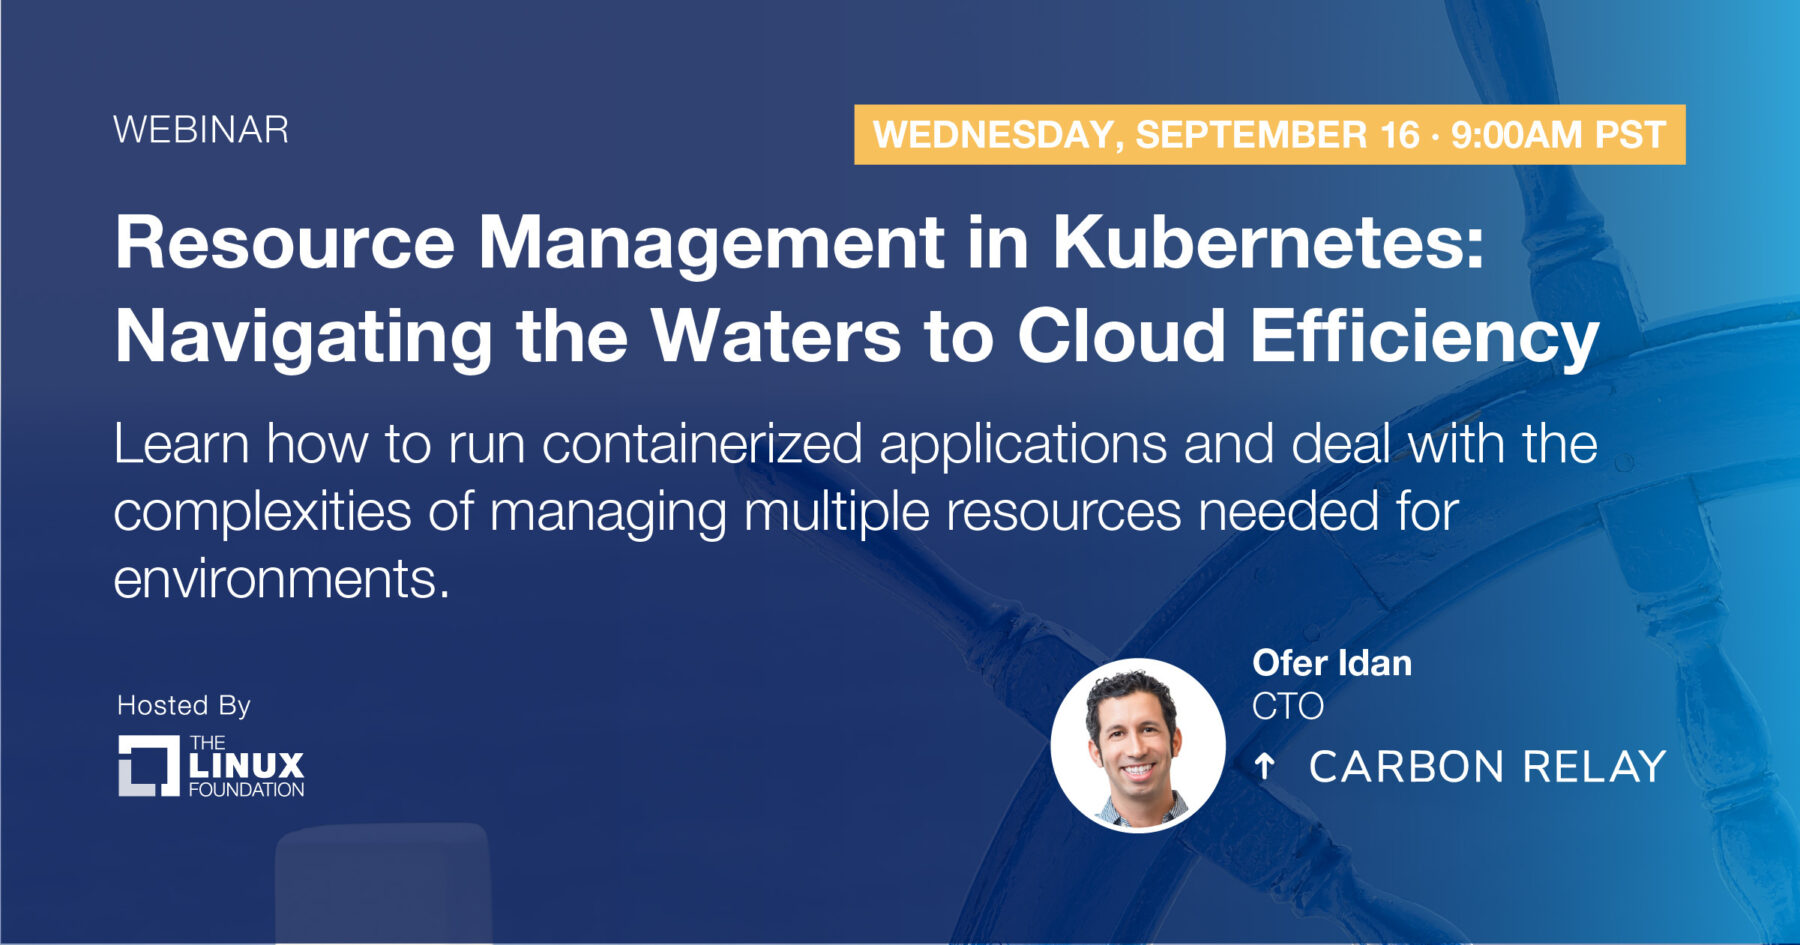 Webinar - Resource Management in Kubernetes: Navigating the Waters to Cloud Efficiency